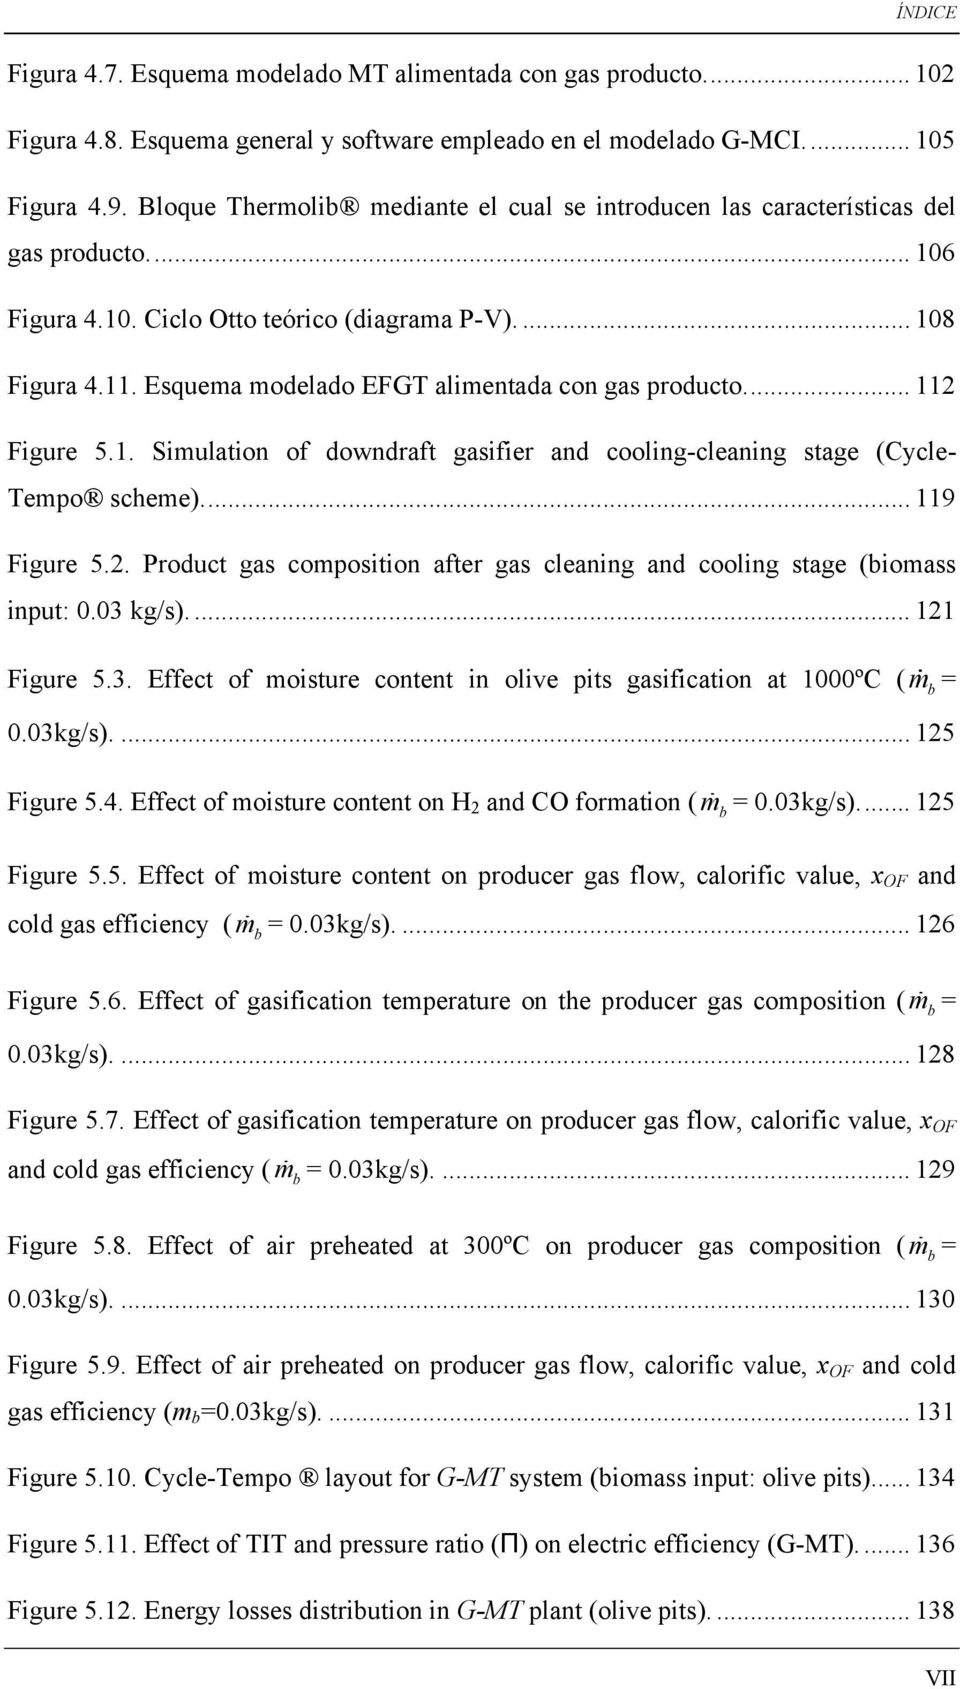 Esquema modelado EFGT alimentada con gas producto.... 112 Figure 5.1. Simulation of downdraft gasifier and cooling-cleaning stage (Cycle- Tempo scheme).... 119 Figure 5.2. Product gas composition after gas cleaning and cooling stage (biomass input: 0.